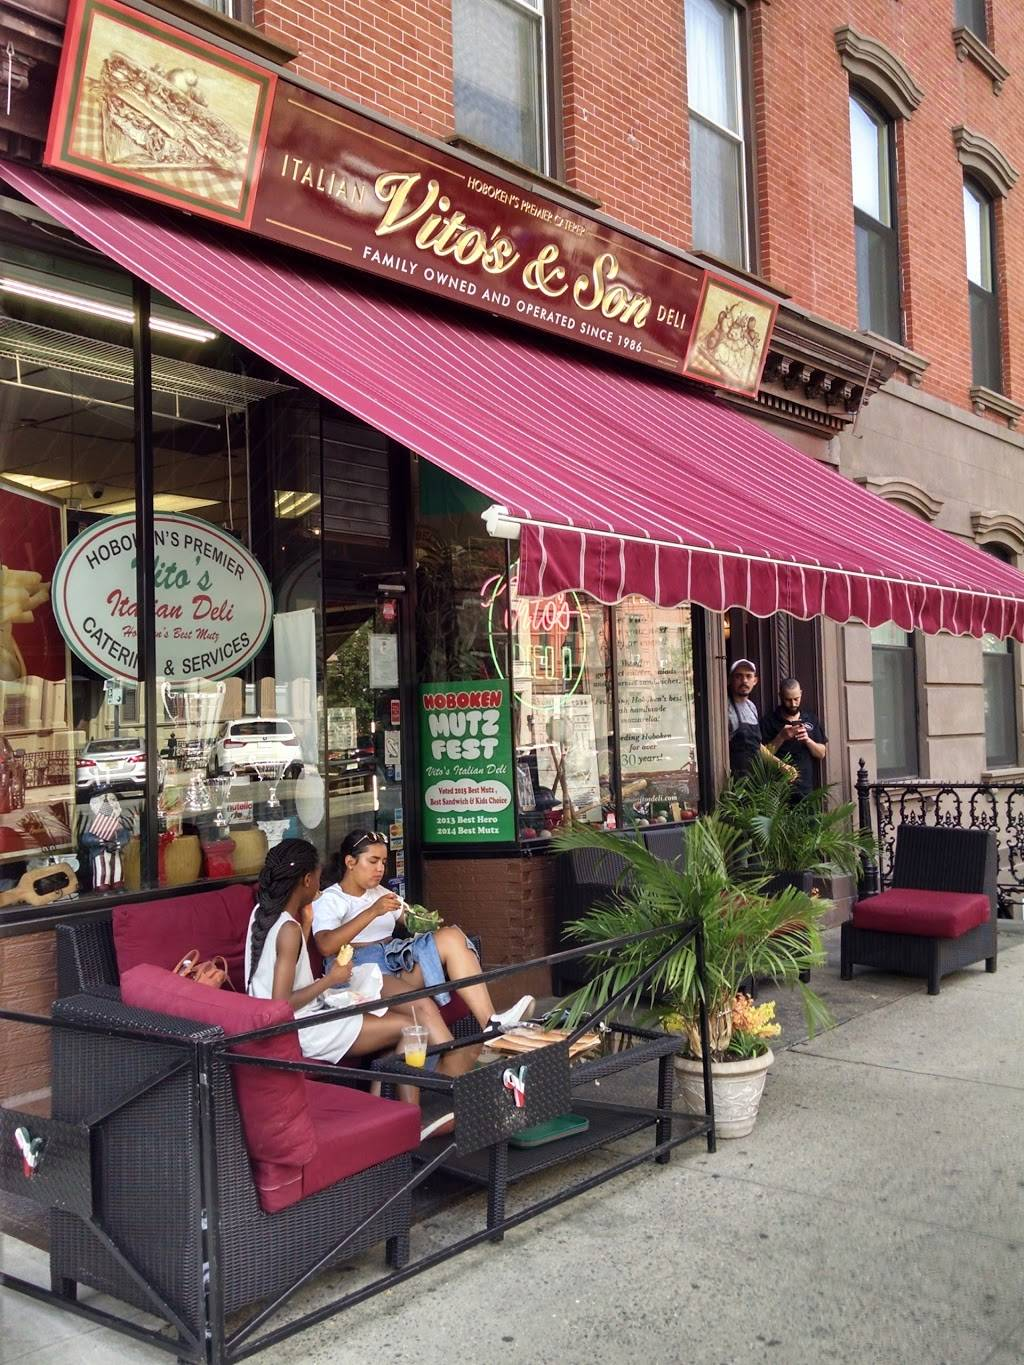 Vitos Deli | meal takeaway | 806 Washington St A, Hoboken, NJ 07030, USA | 2017924944 OR +1 201-792-4944